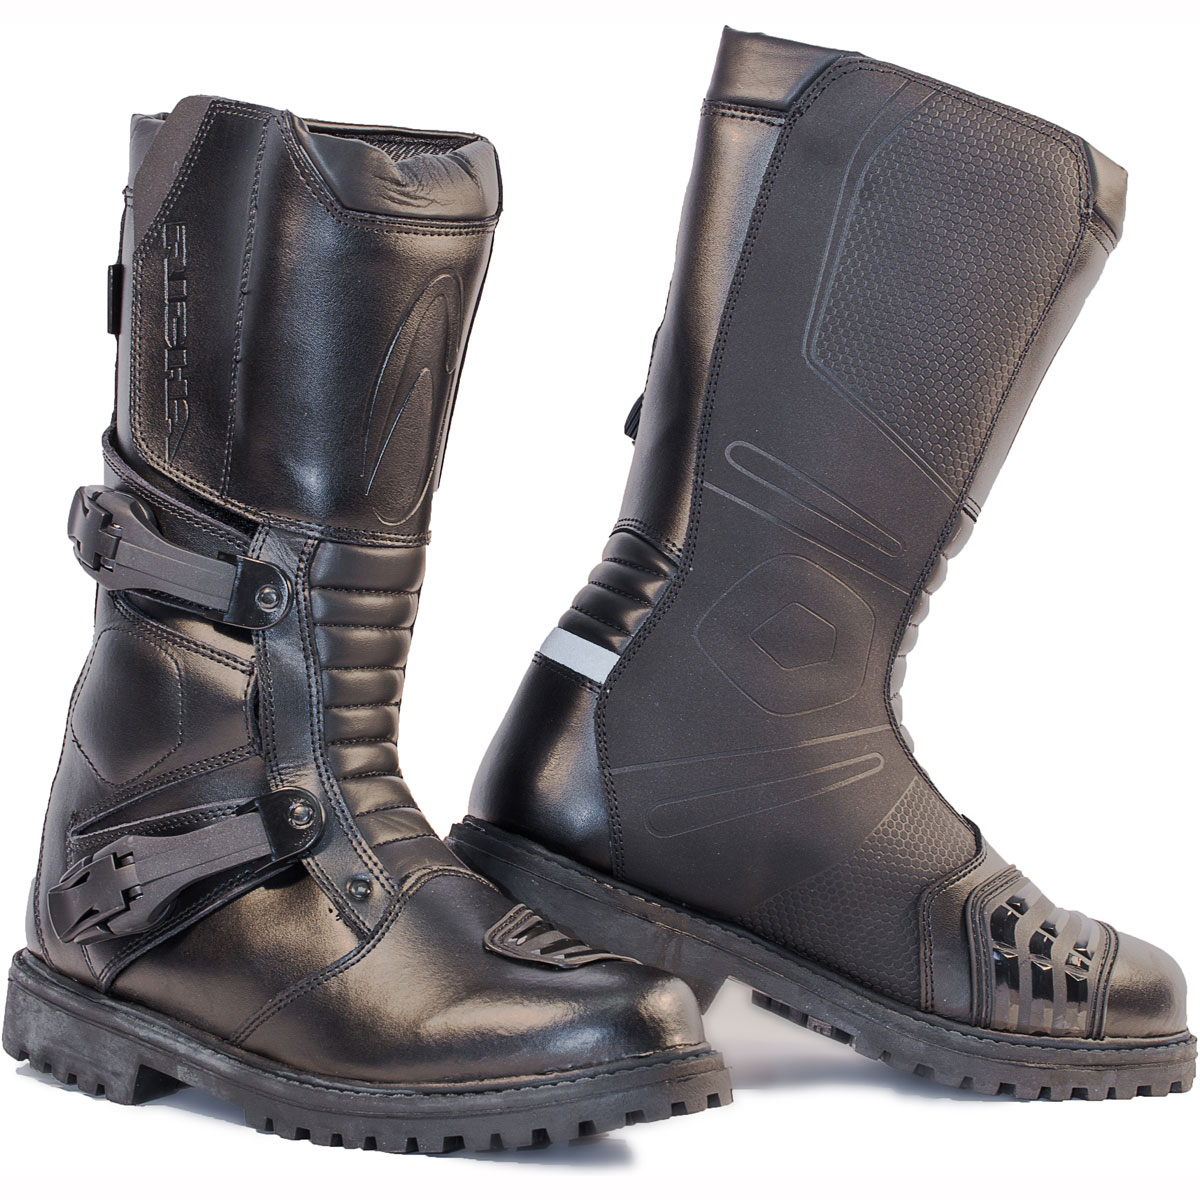 10 of the best adventure boots  4ff62cdfe